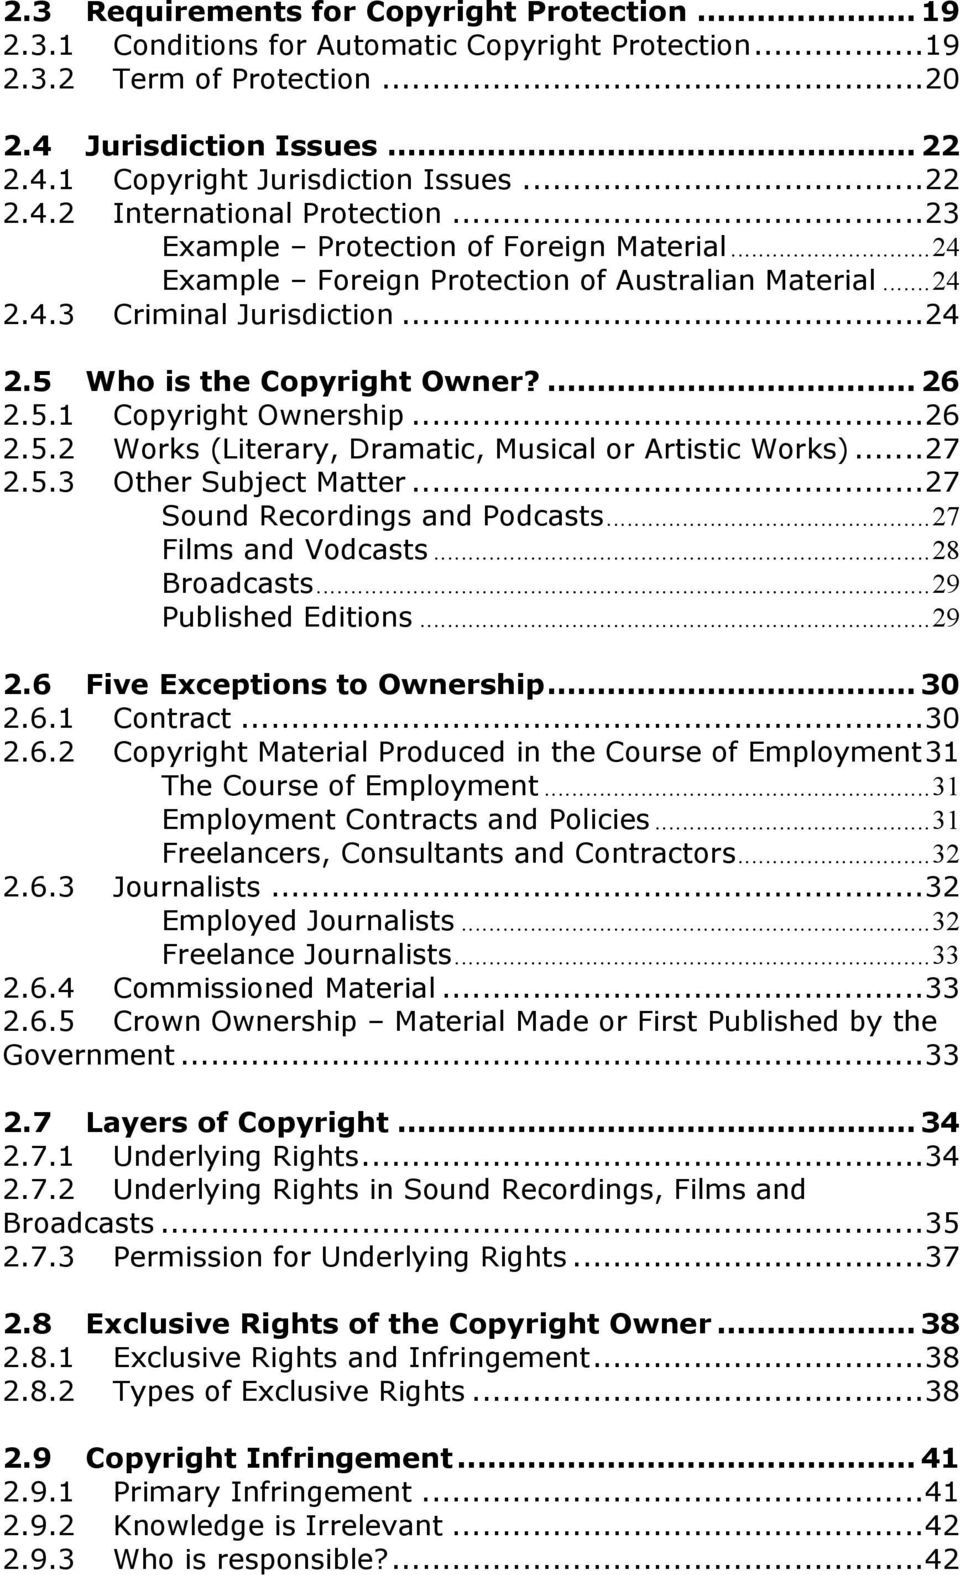 ... 26 2.5.1 Copyright Ownership...26 2.5.2 Works (Literary, Dramatic, Musical or Artistic Works)...27 2.5.3 Other Subject Matter...27 Sound Recordings and Podcasts...27 Films and Vodcasts.